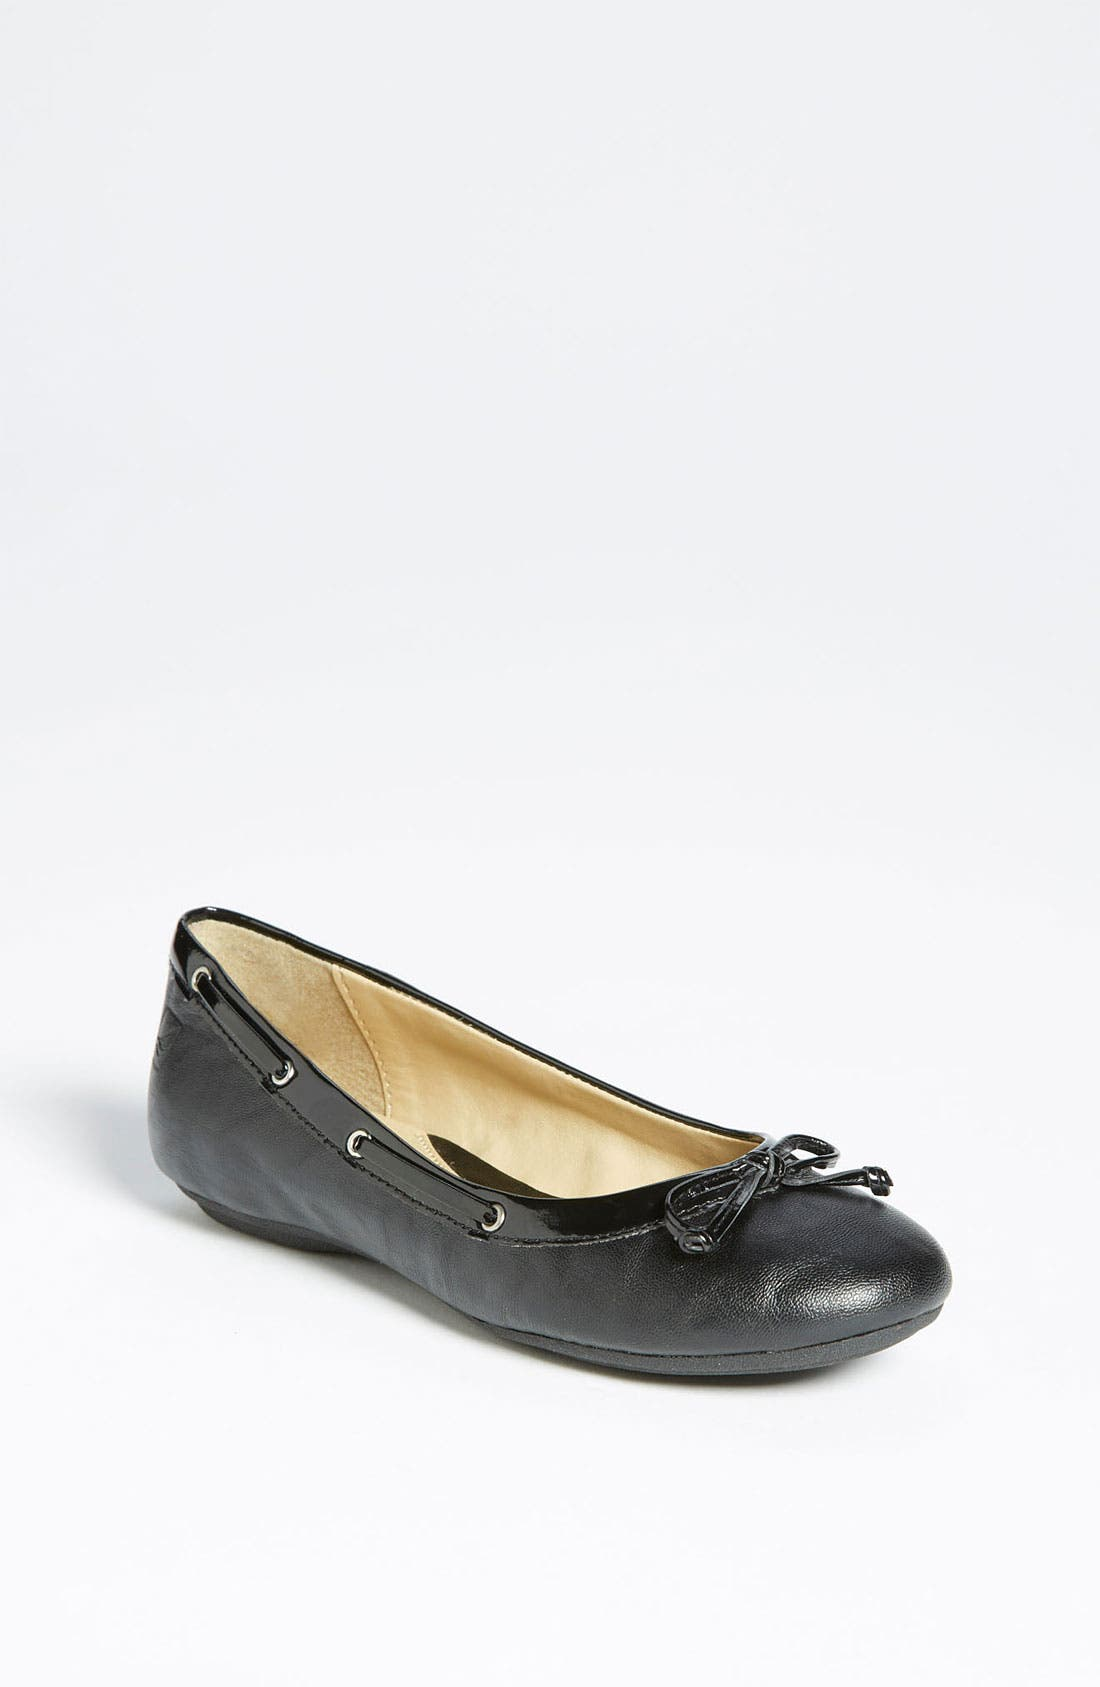 Main Image - Sperry Kids 'Marina' Flat (Online Only) (Toddler, Little Kid & Big Kid)